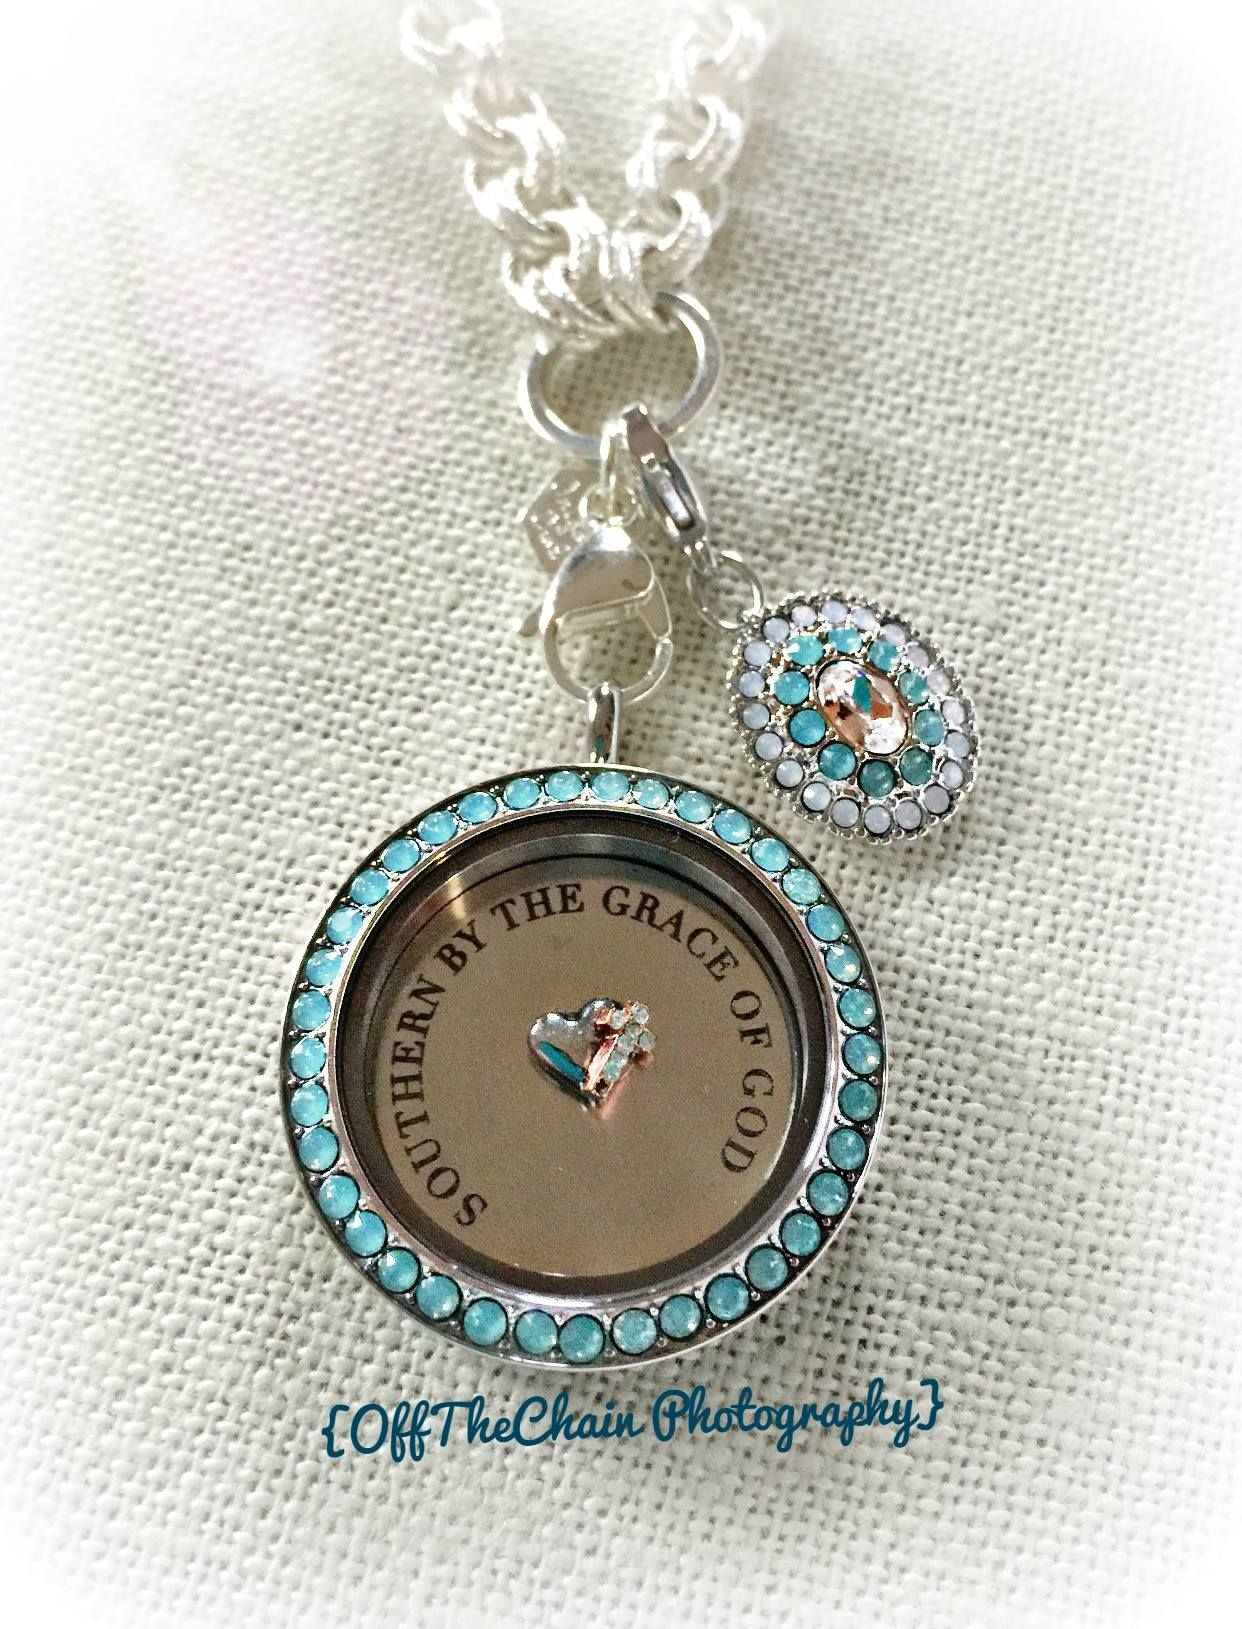 Origami Owl On Pinterest Pictures To Pin On Pinterest Pinmash